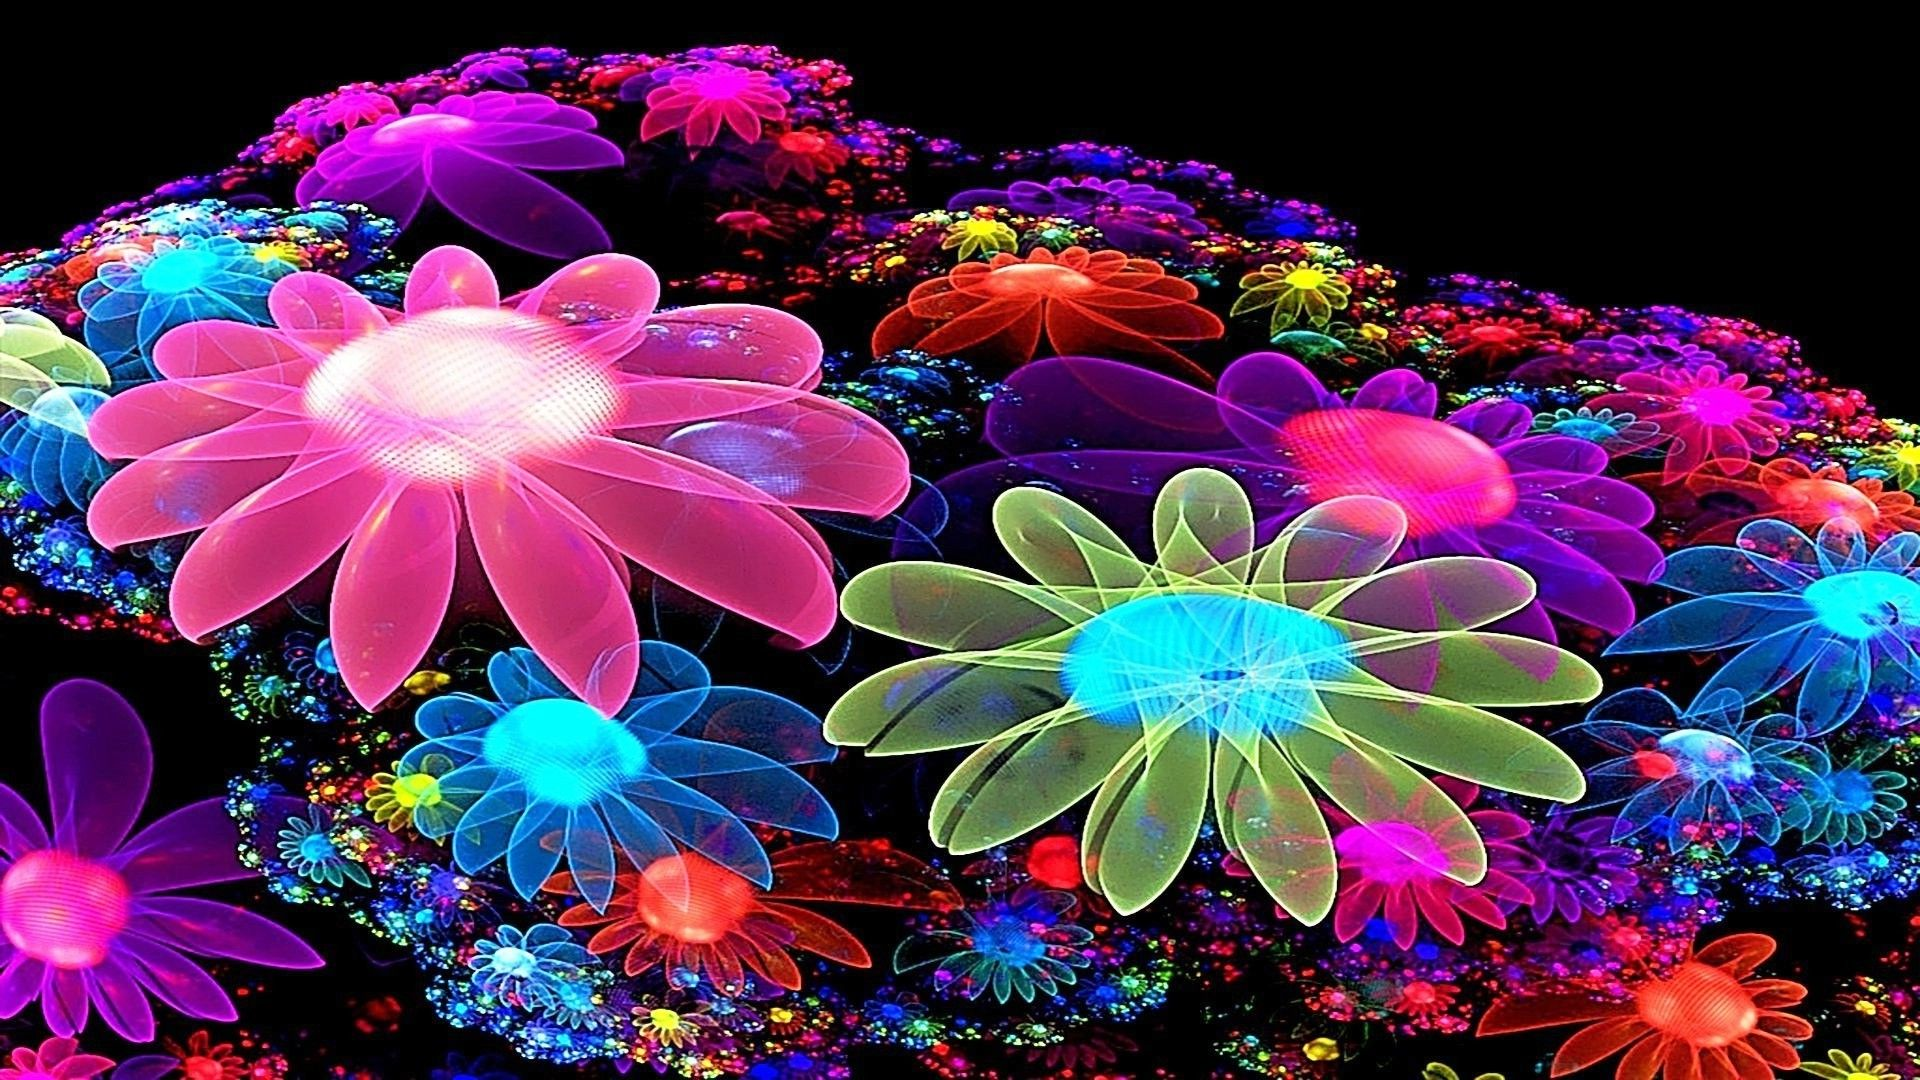 Colorful Flower Wallpaper 3D